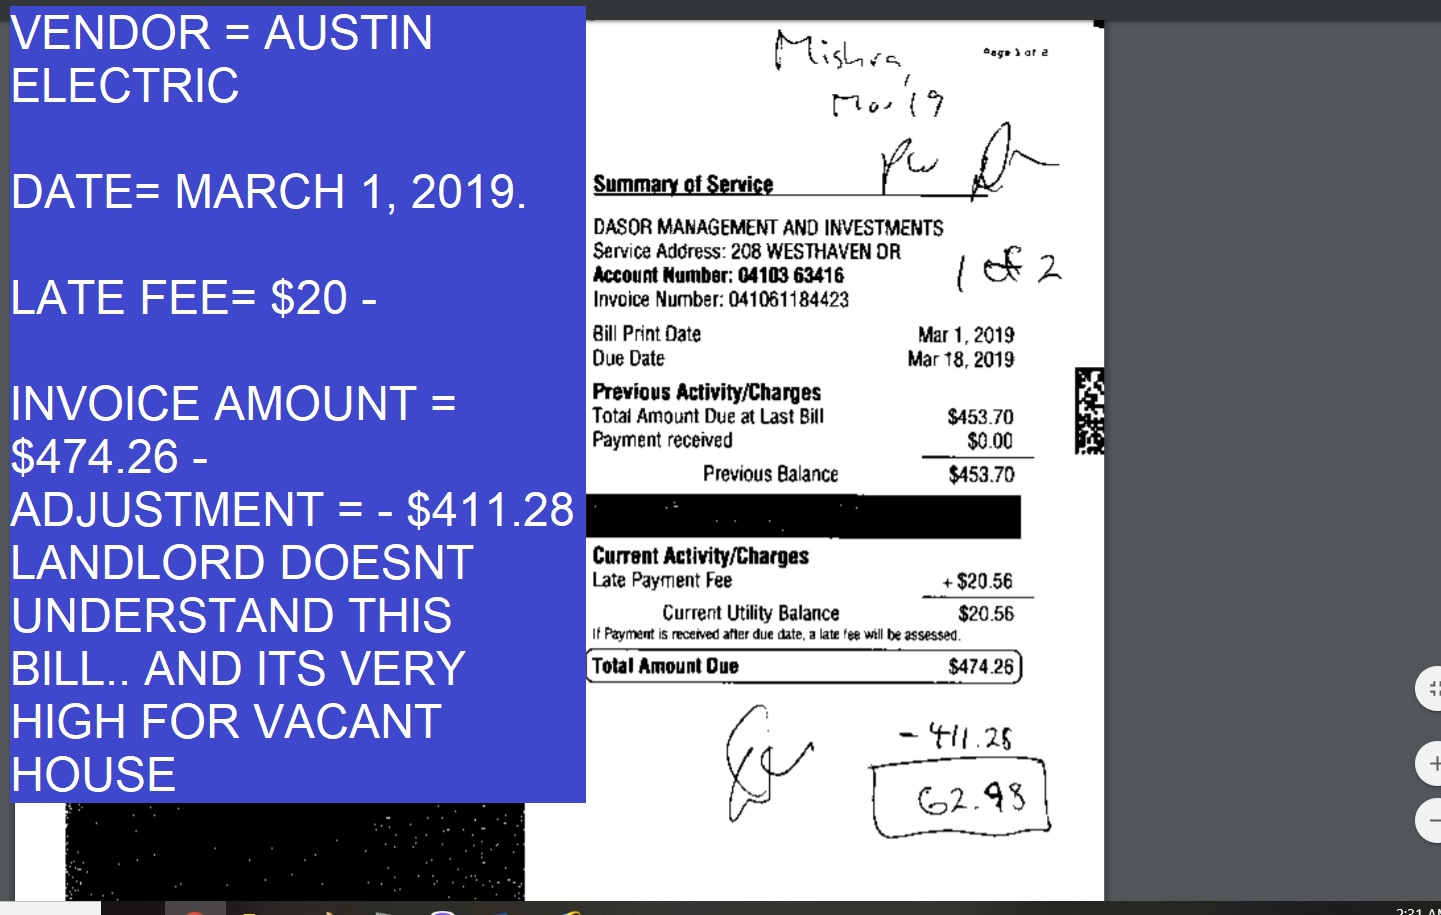 MARCH ELECTRIC BILL - FINAL - LANDLORD DOESNT UNDERSTAND THIS BILL